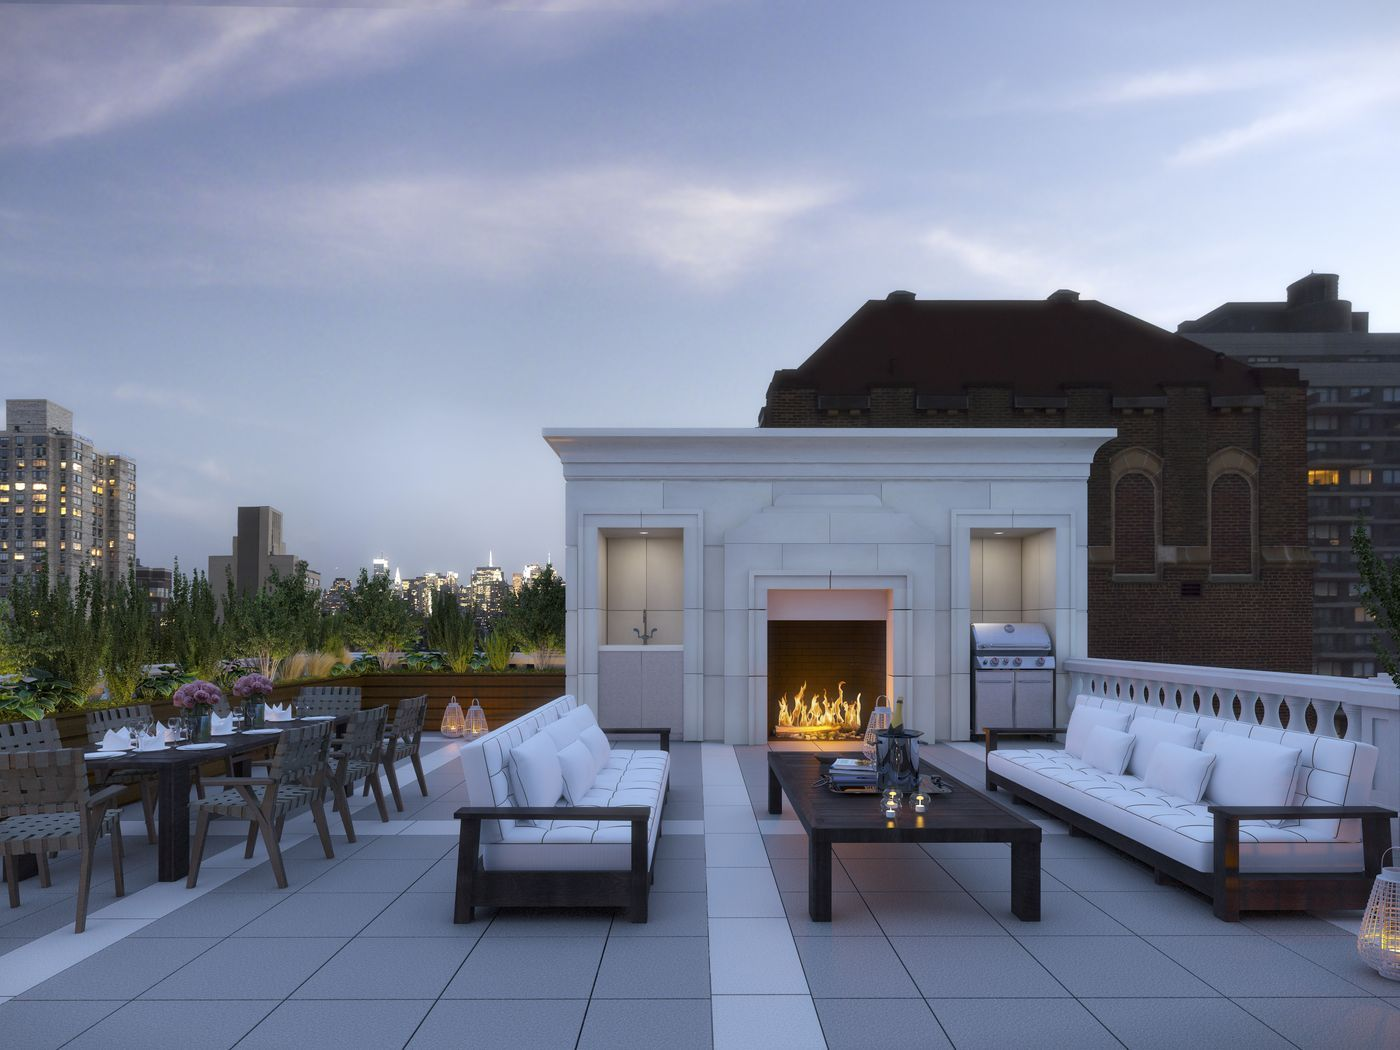 $44M Park Ave. Penthouse Has Insane Floorplan, Rooftop Pool - Curbed NY